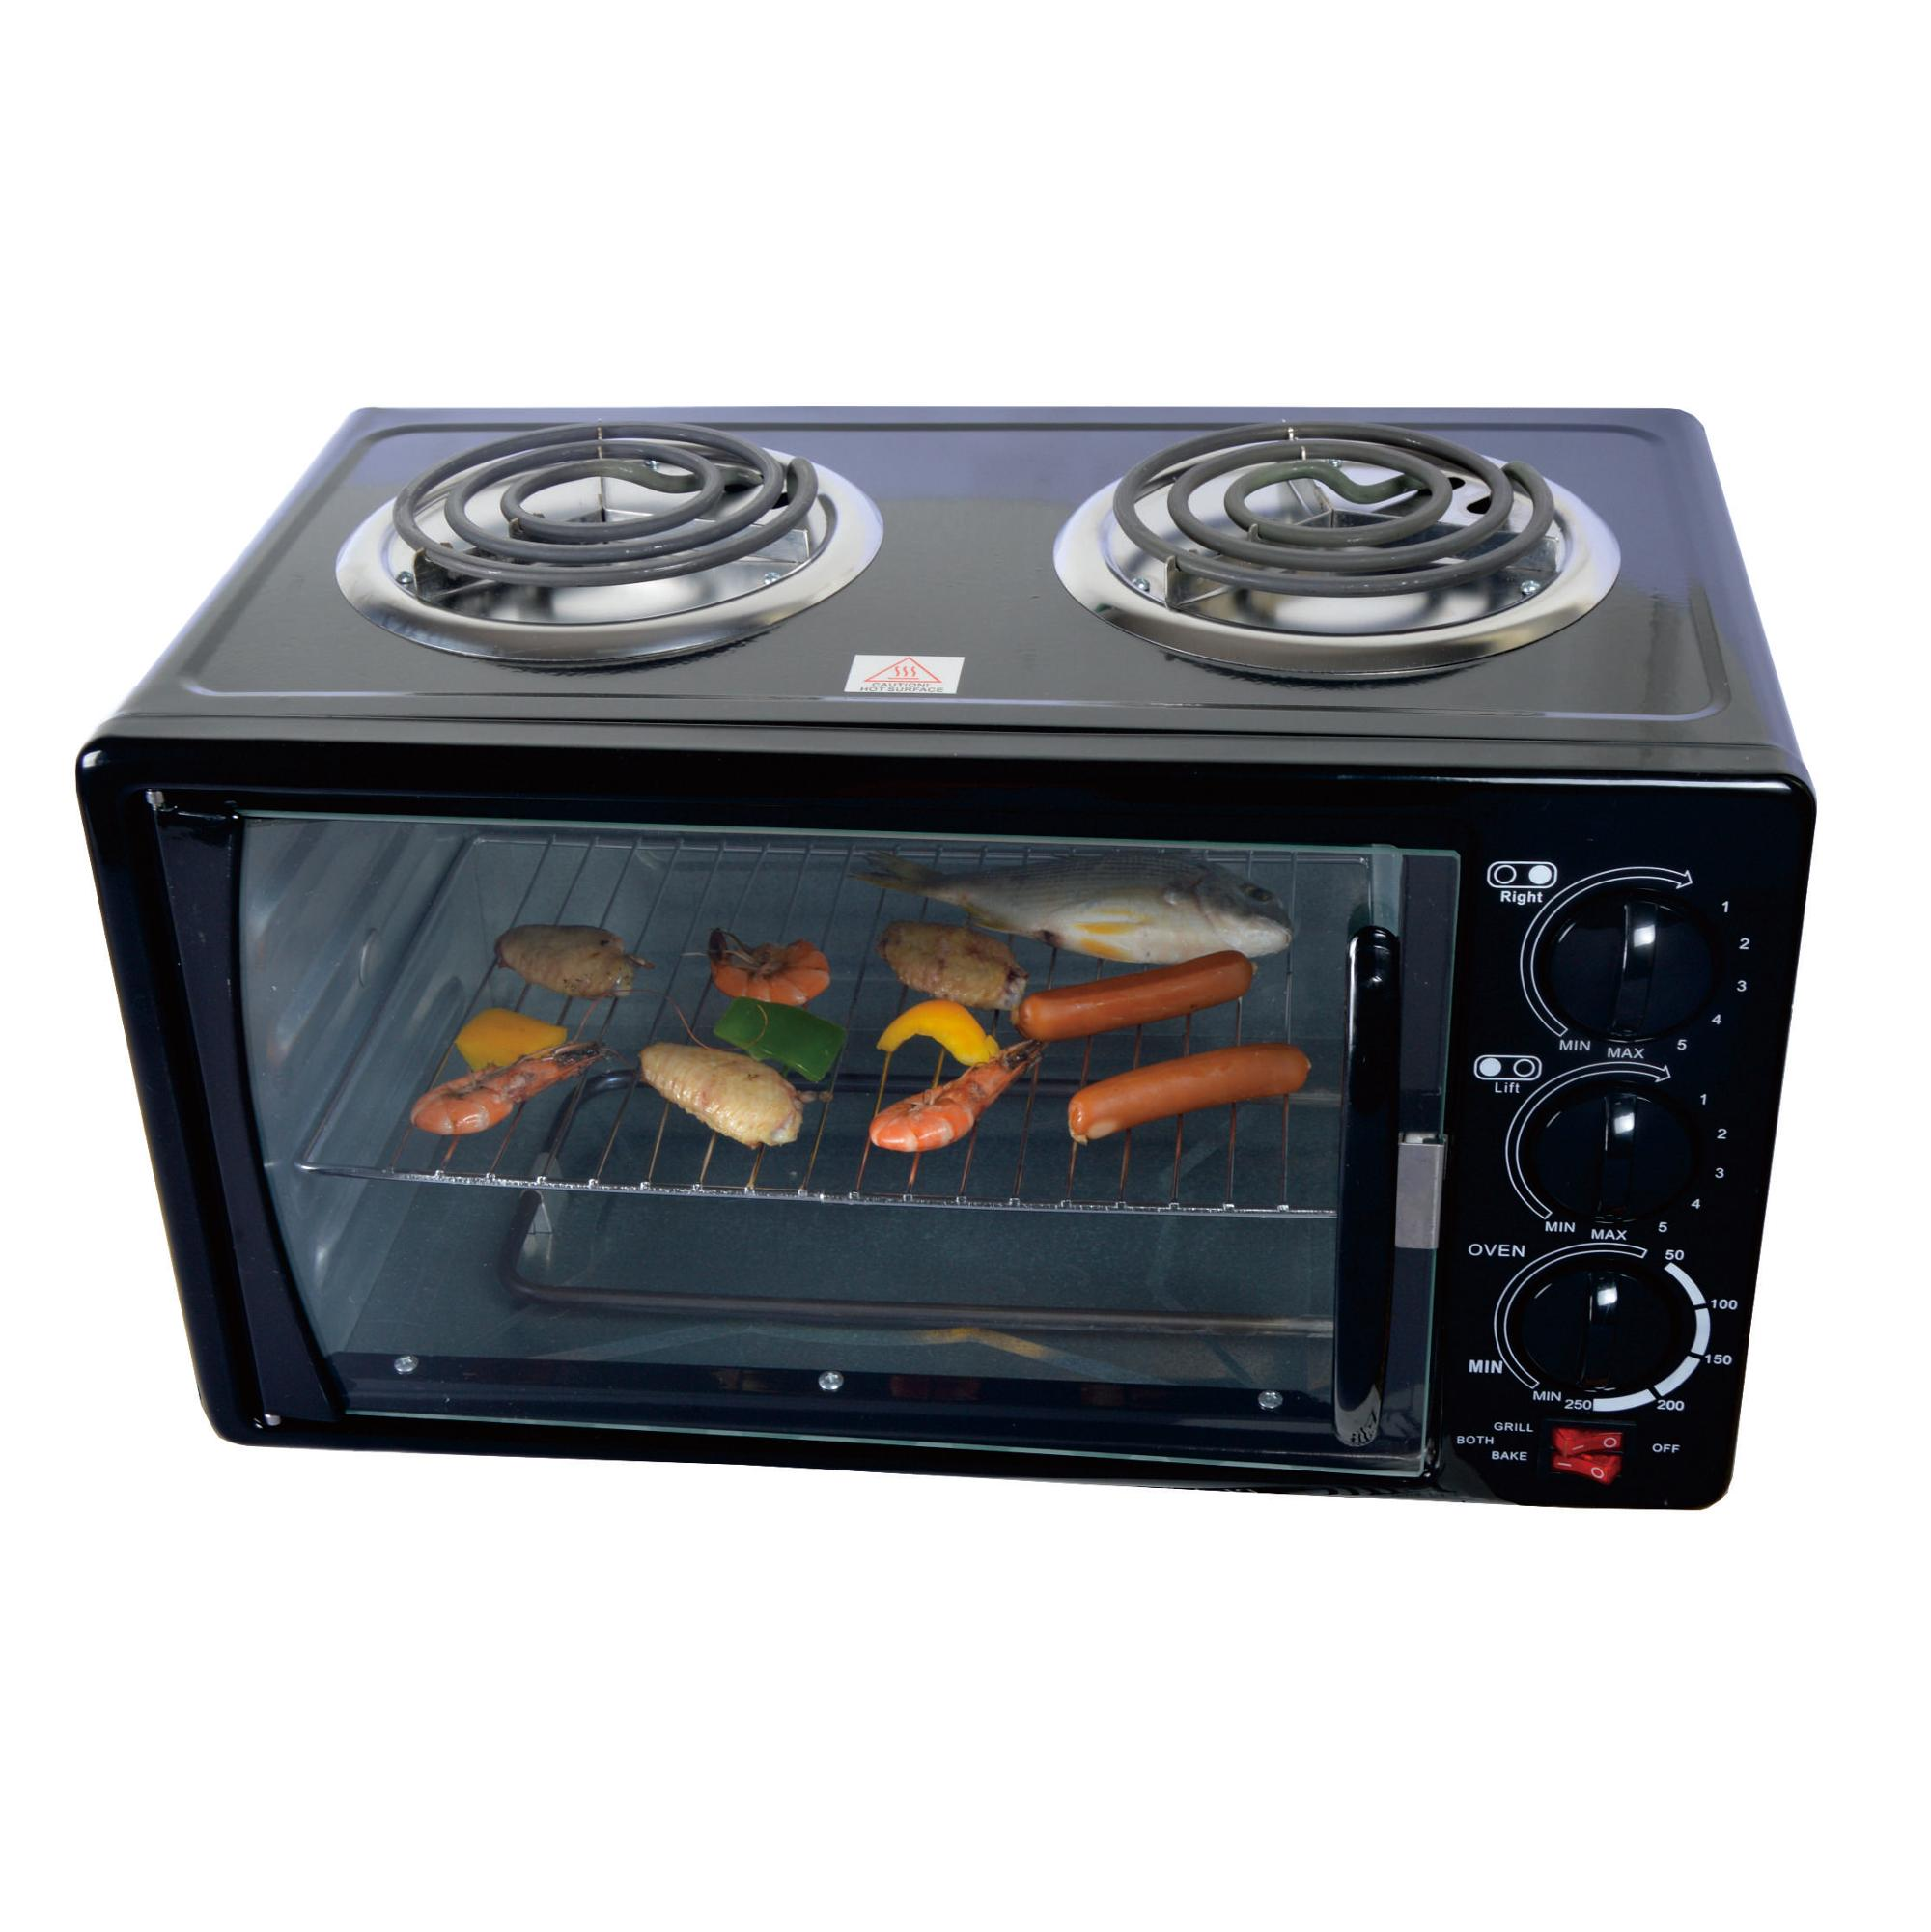 Electric Hotplate Oven Electric Oven With Hot Plate Electric Toaster Oven Hotplate